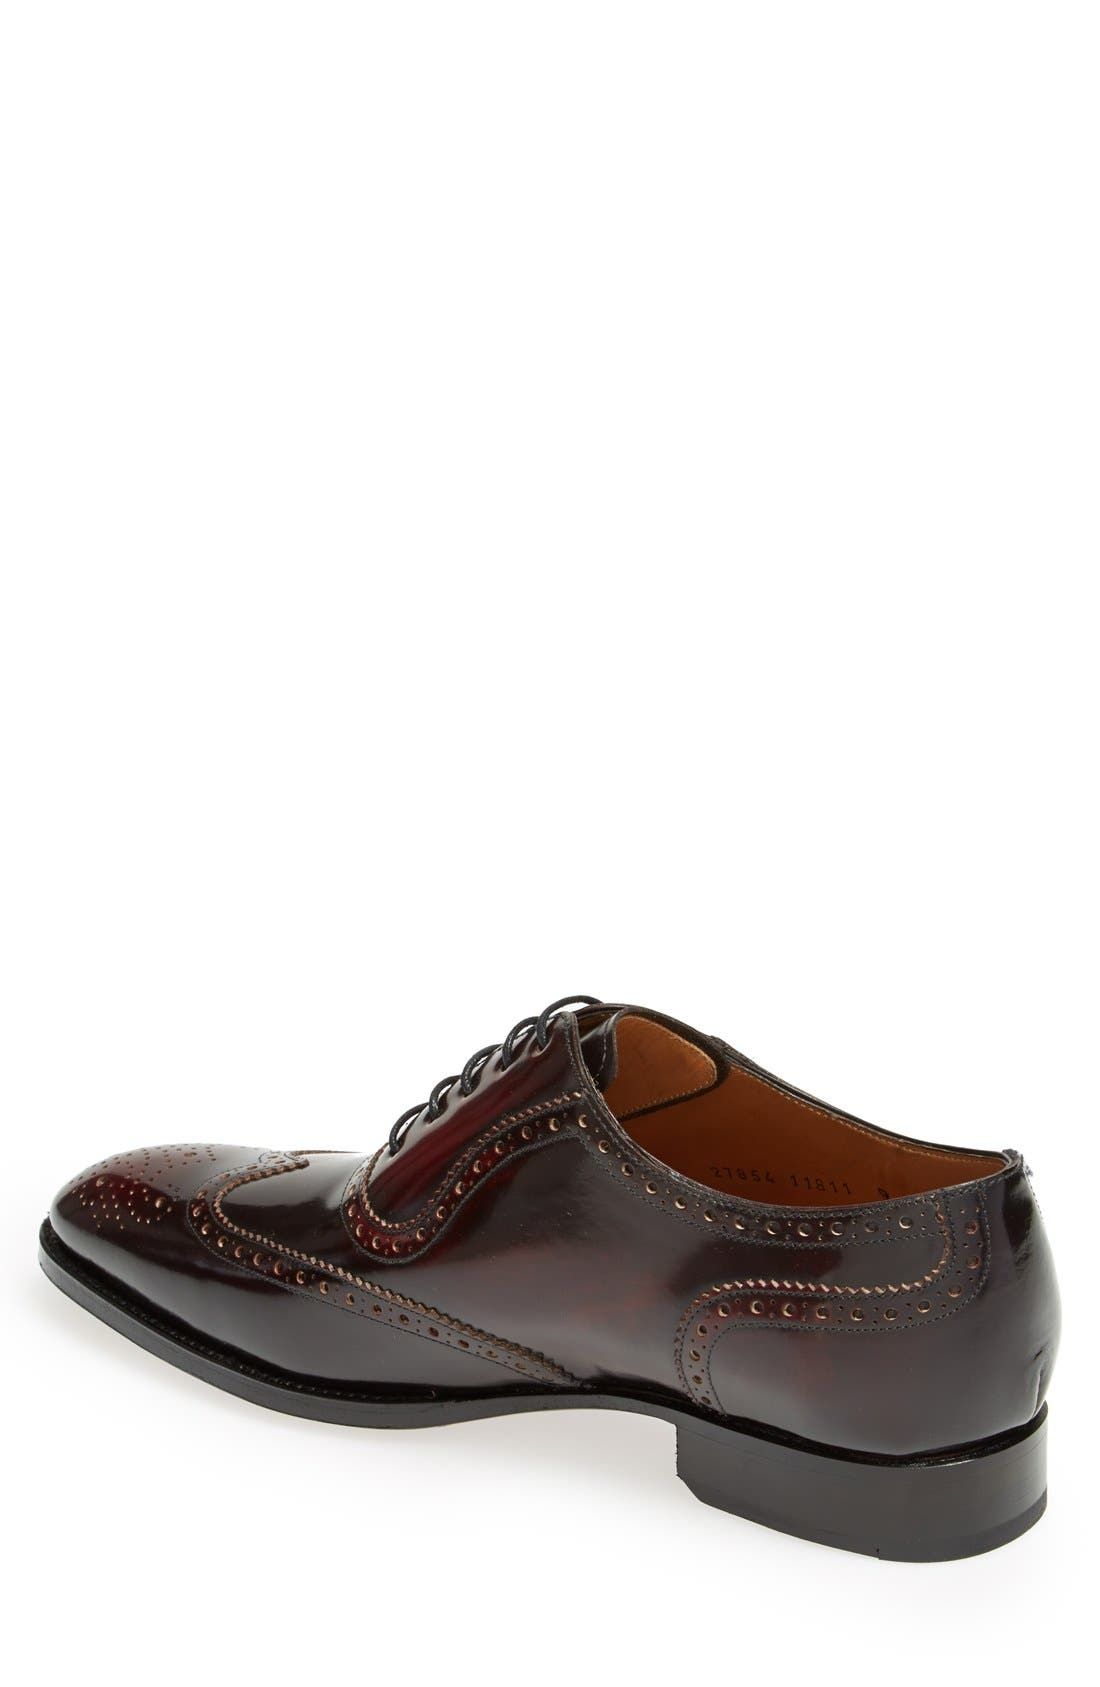 'Wexford' Wingtip,                             Alternate thumbnail 2, color,                             BORDEAUX